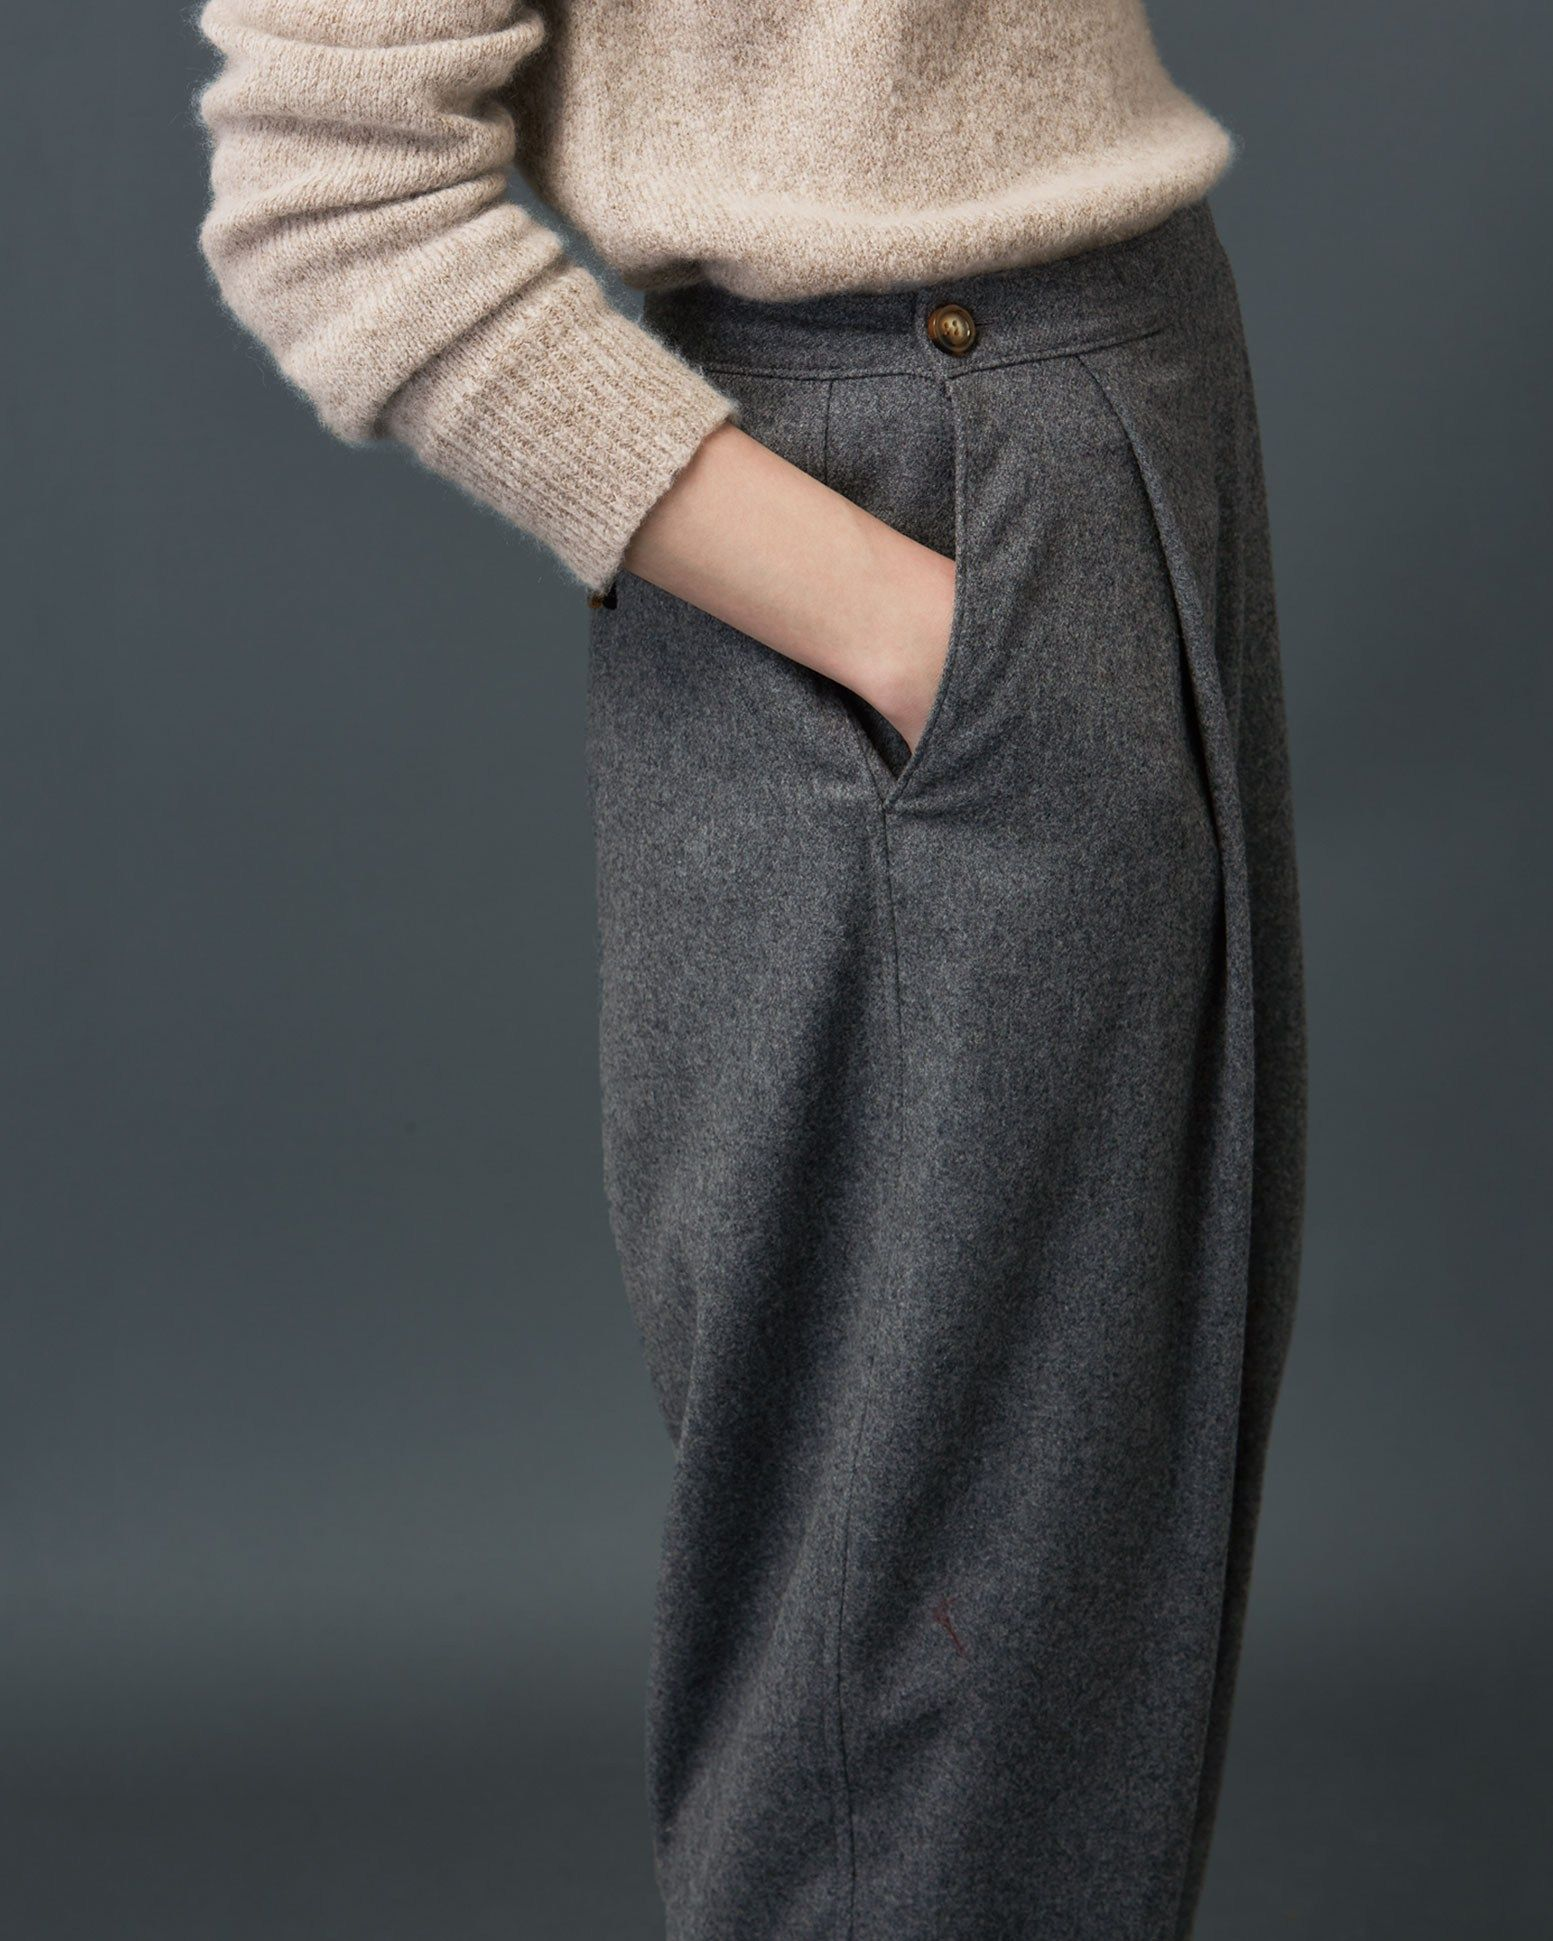 TOAST | Very tapered, ankle-skimming, pleat-front trousers in a soft